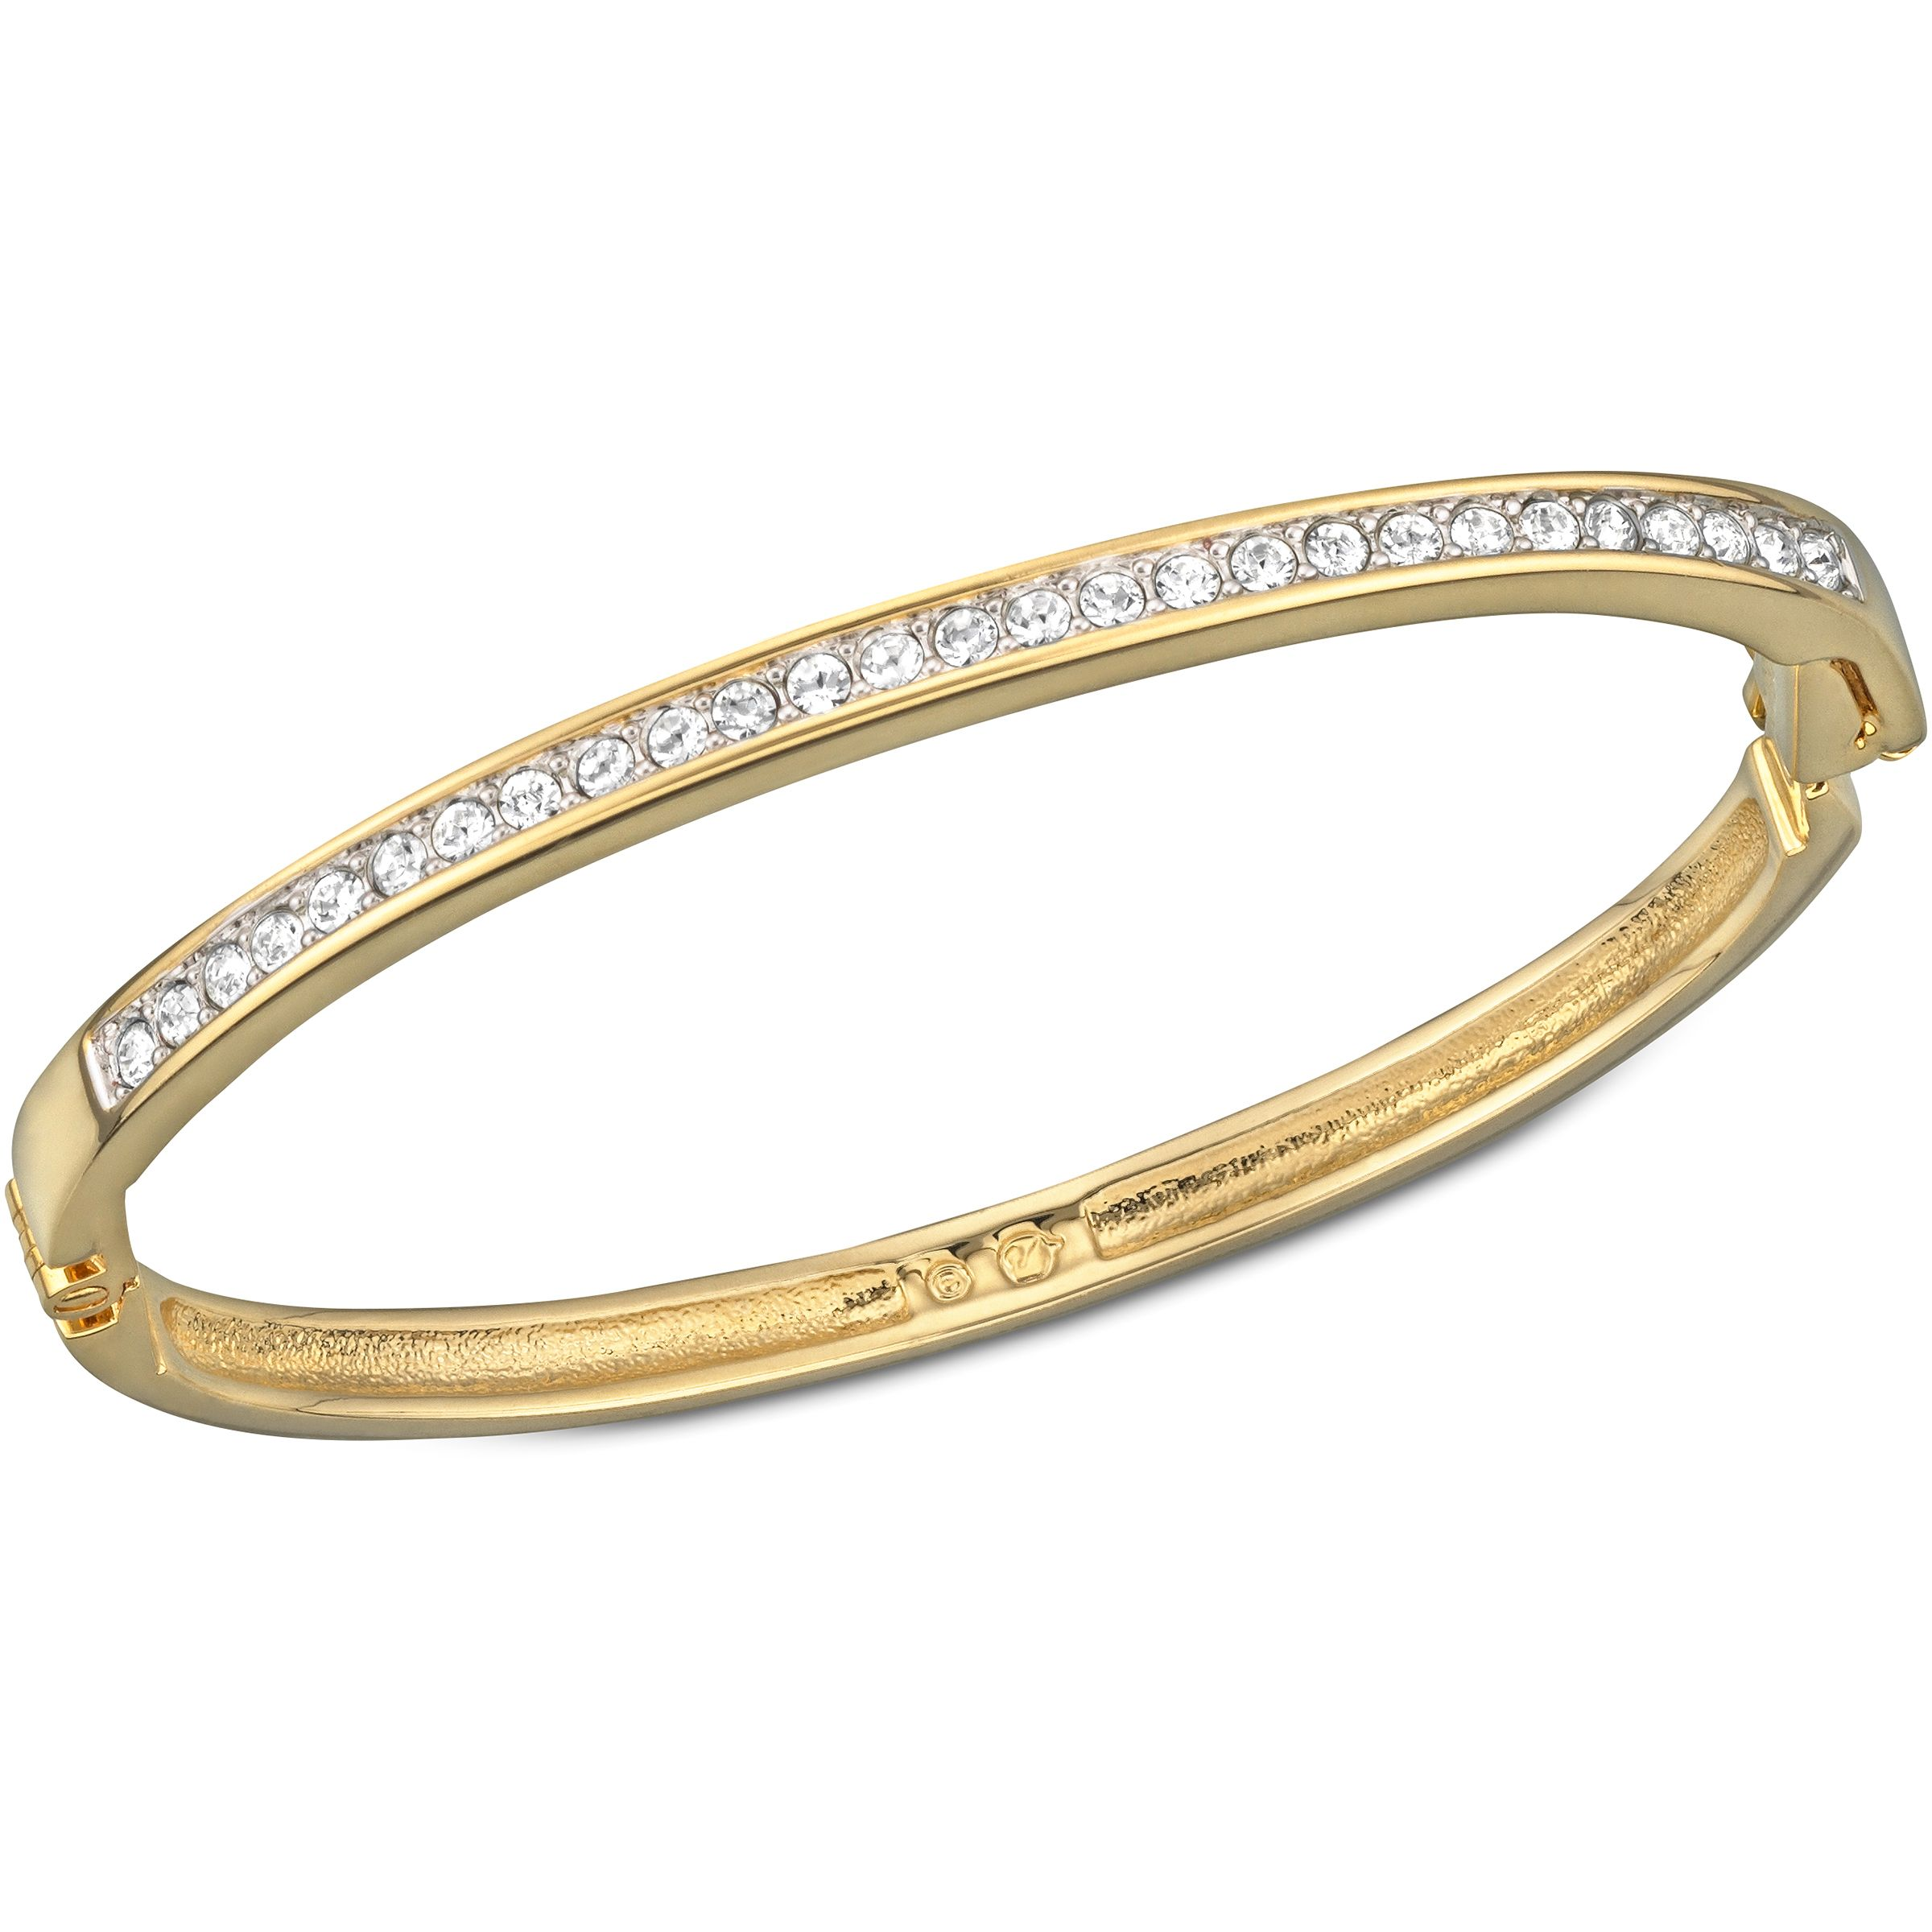 Channel-set bangle